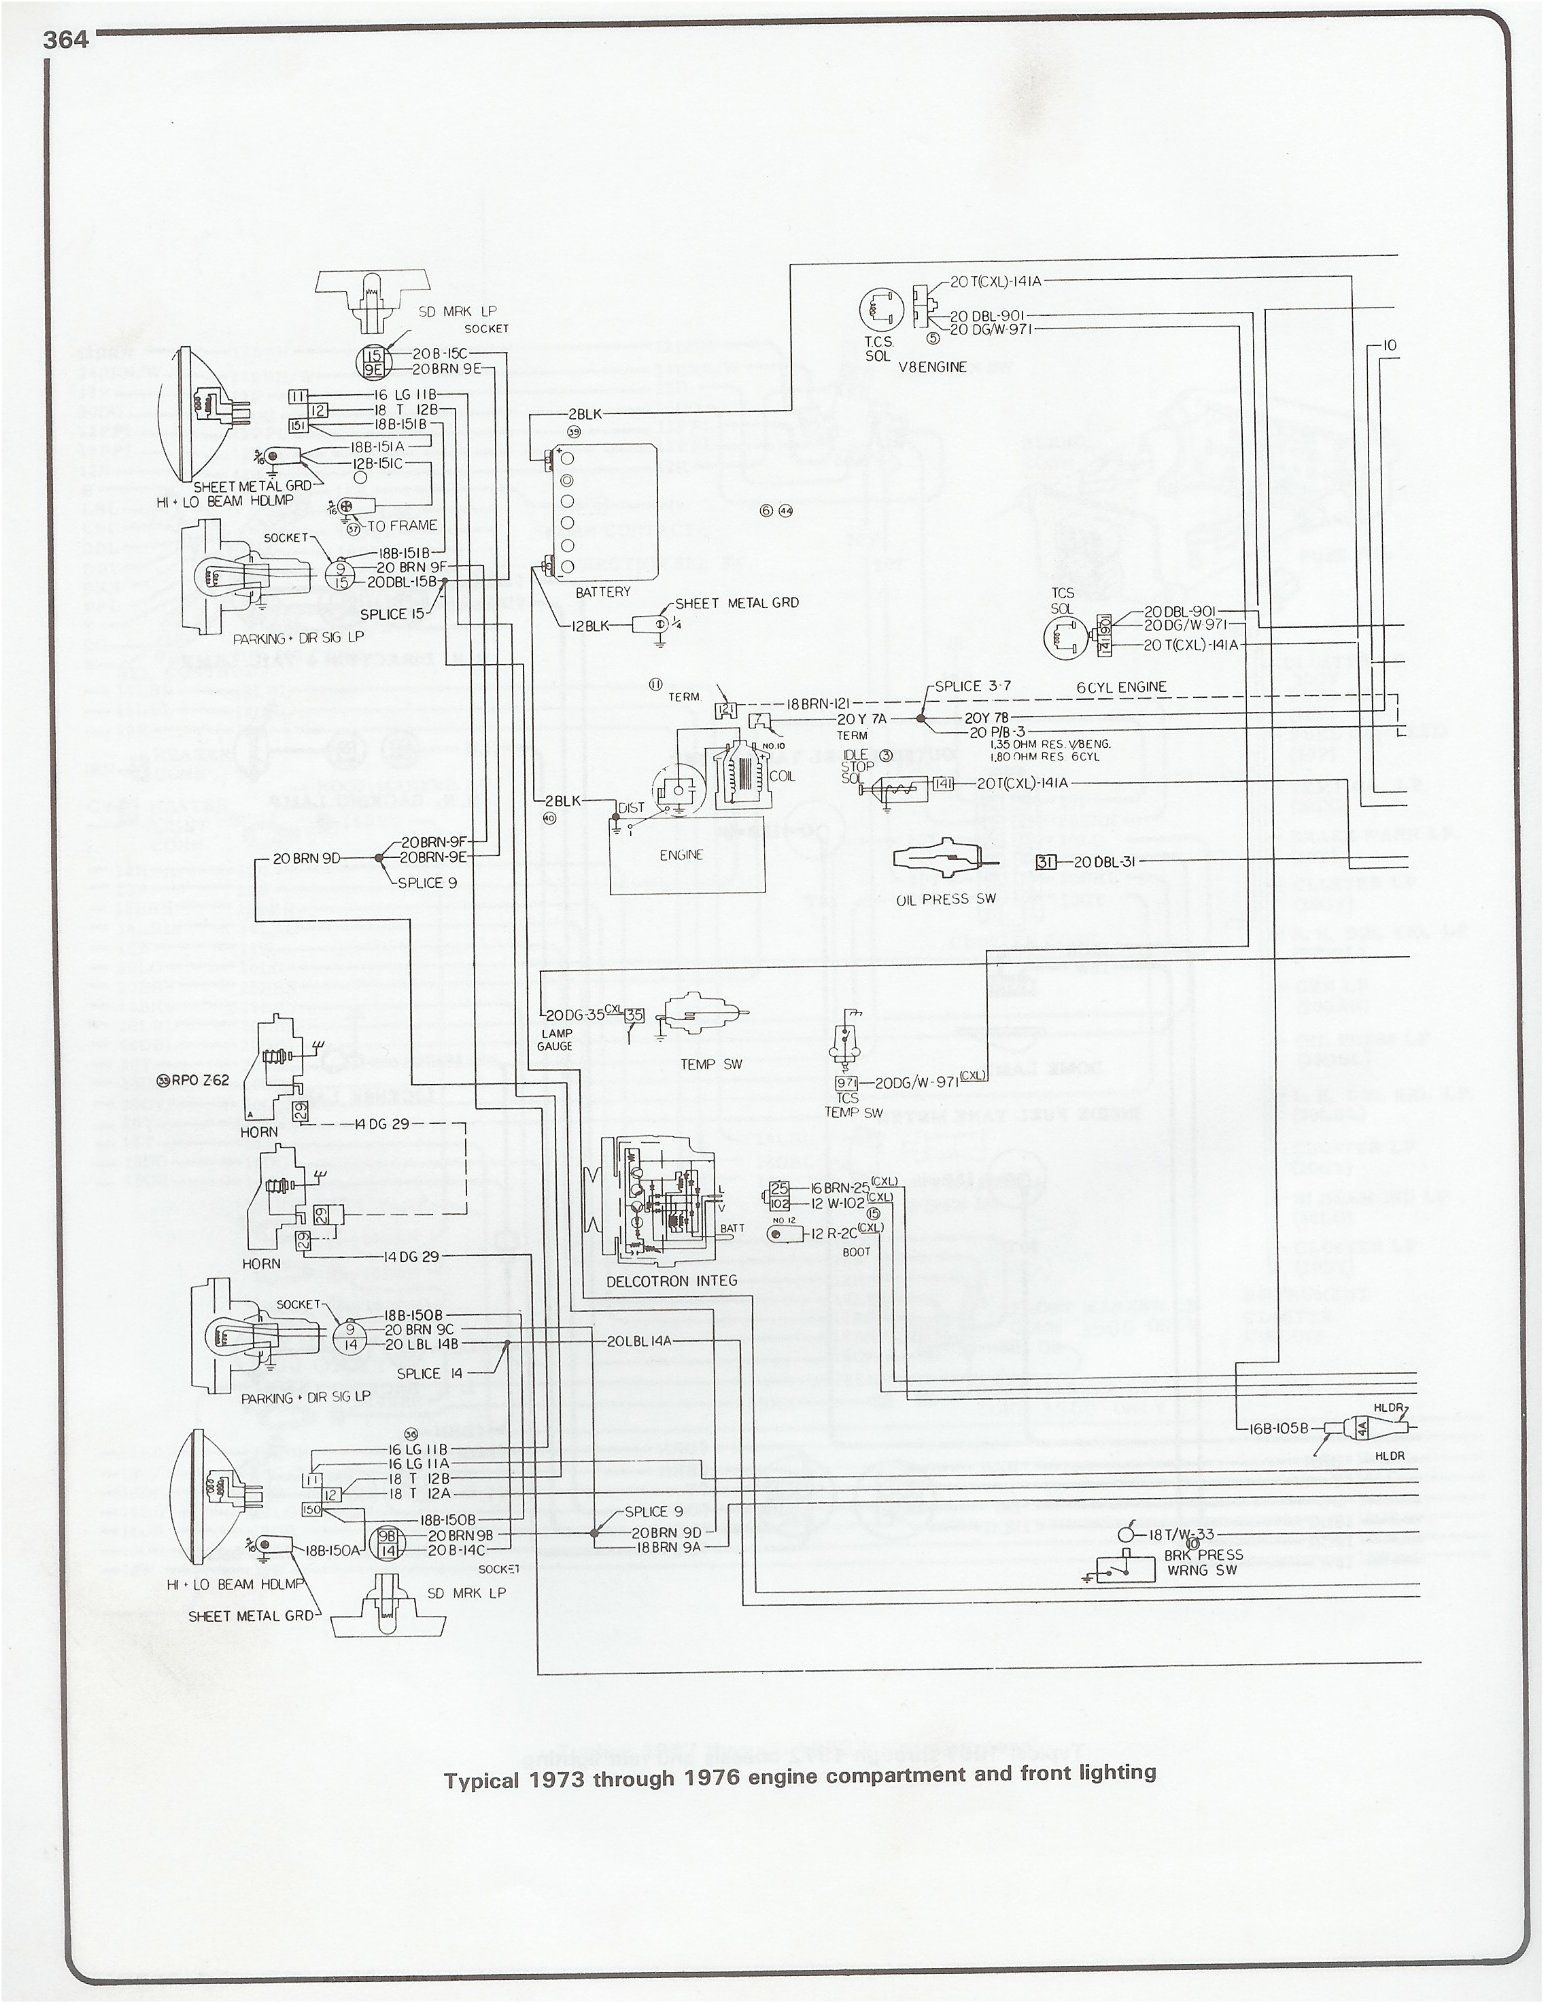 hight resolution of wiring diagram 1973 1976 chevy pickup chevy wiring diagram